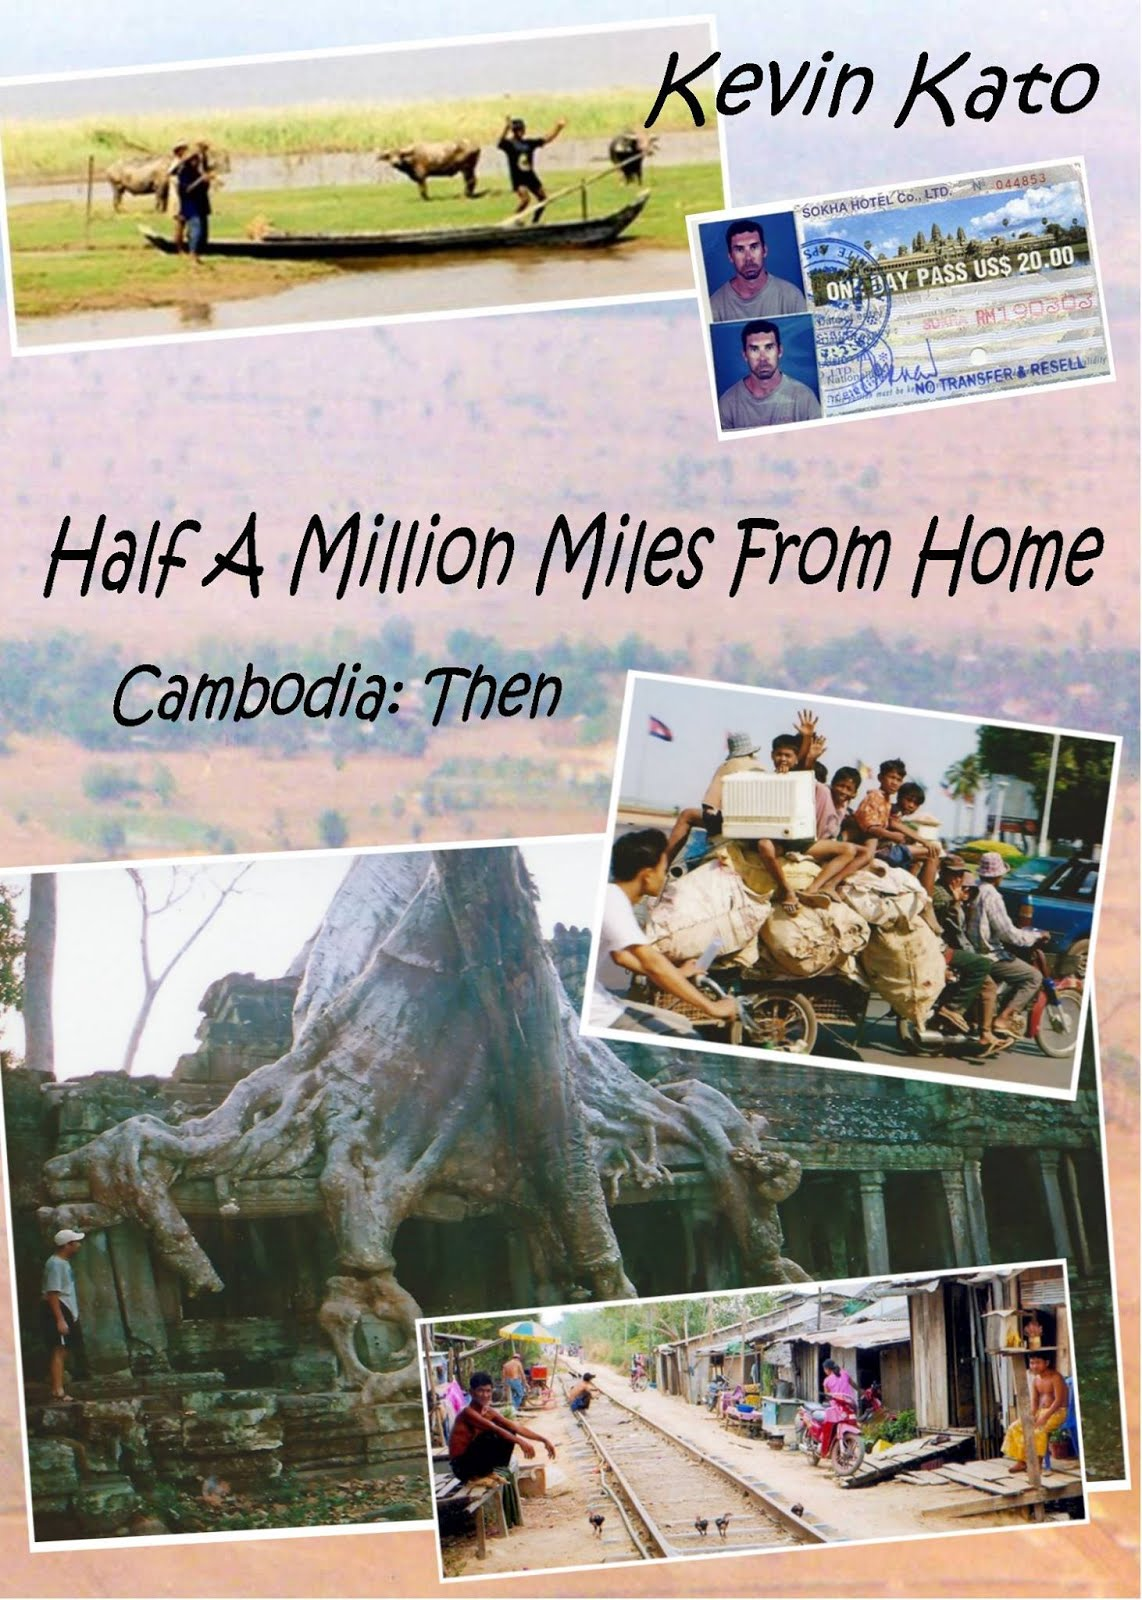 Cambodia: Half a Million Miles From Home